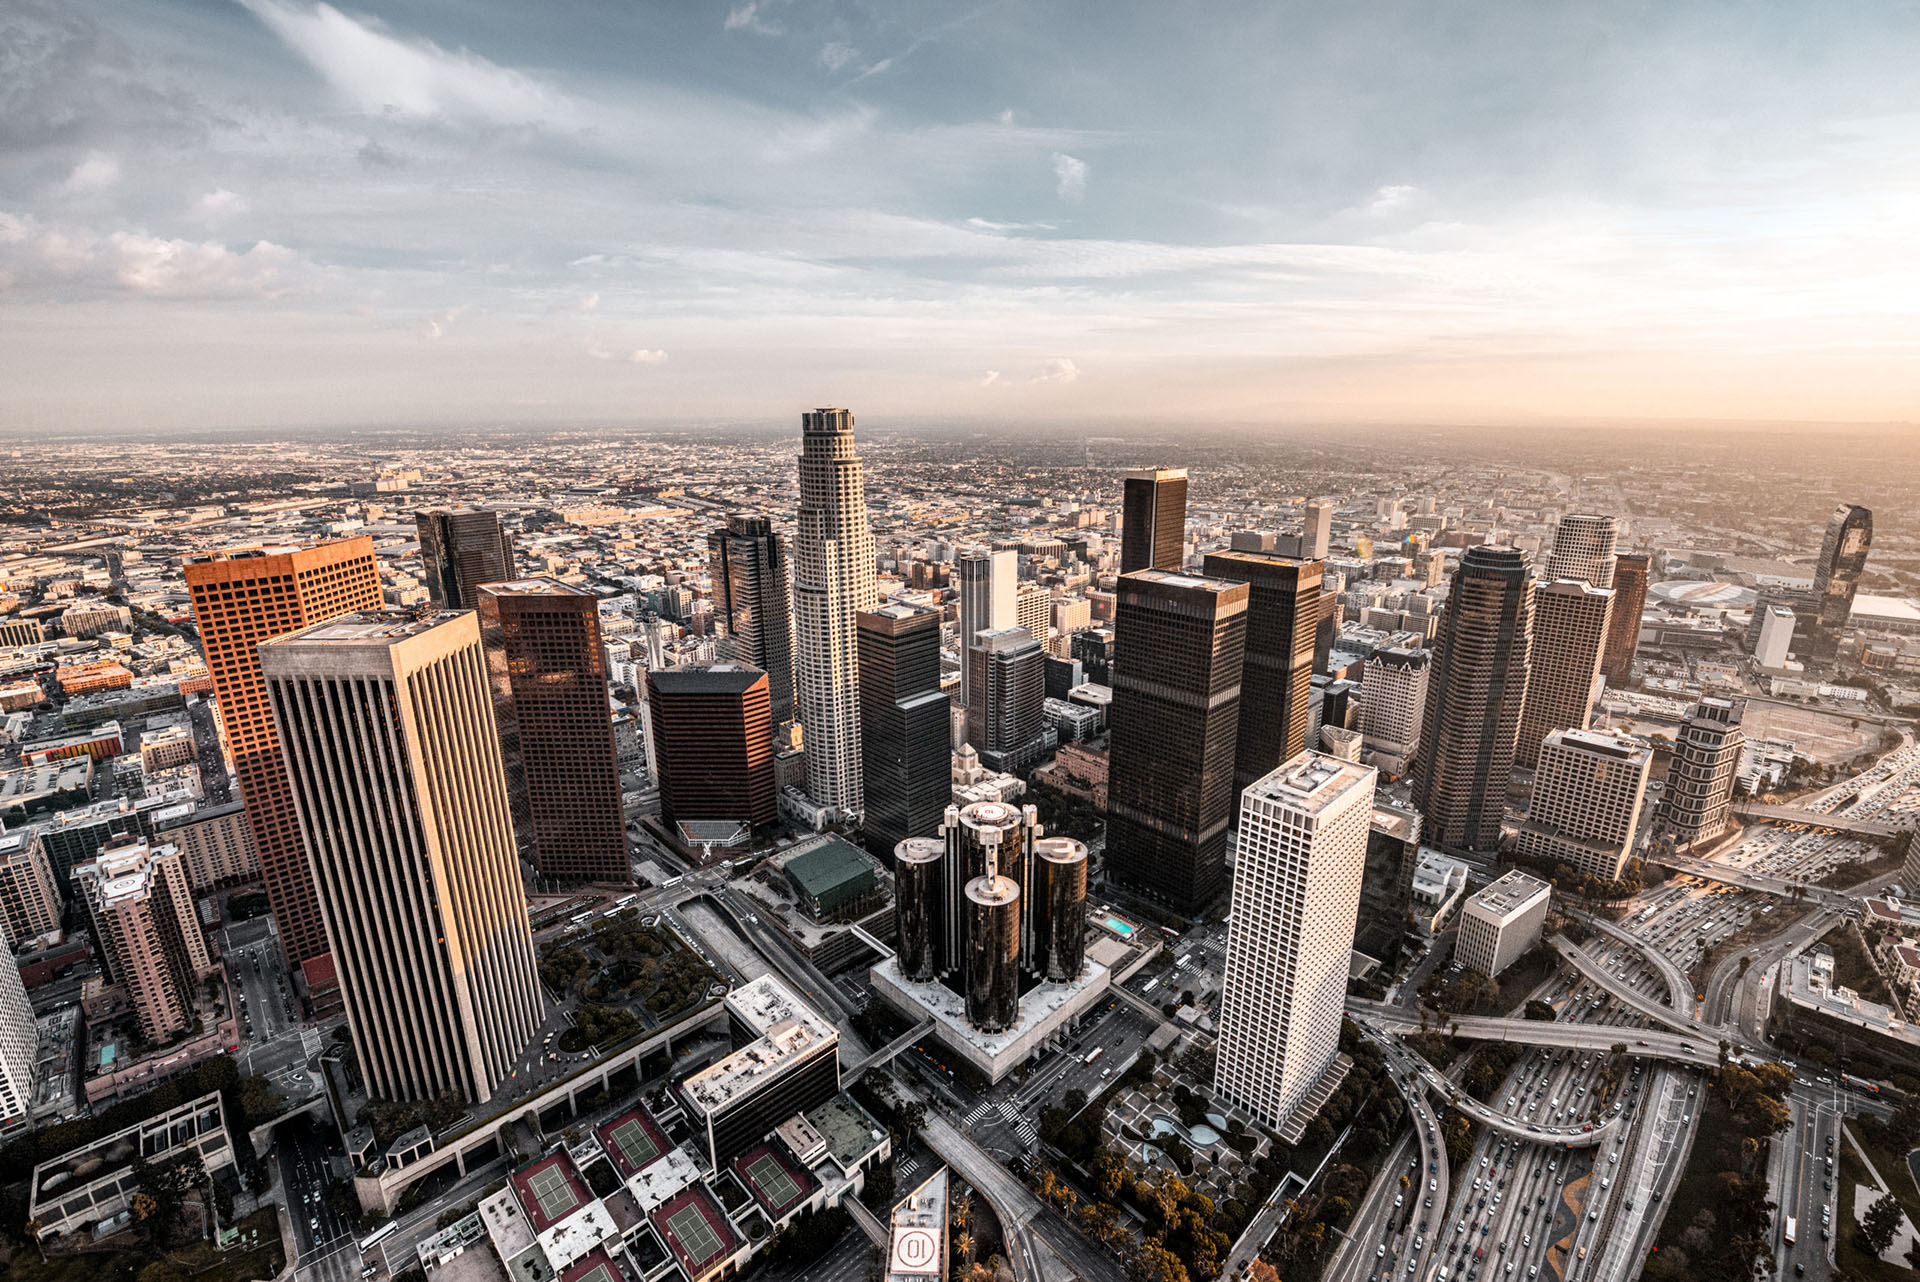 An aerial view of Los Angeles downtown